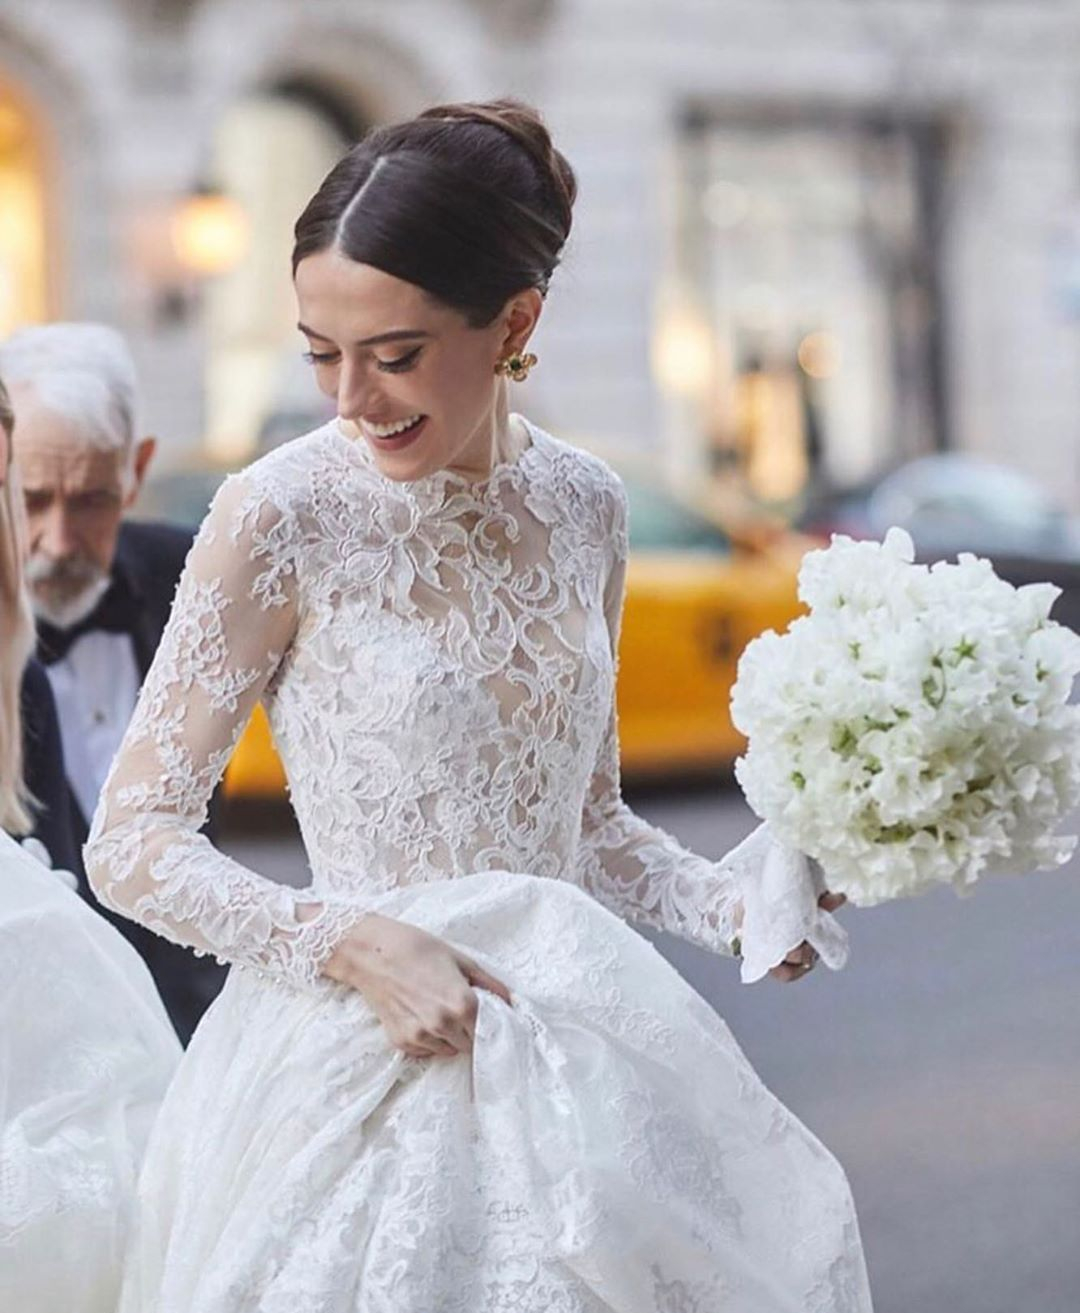 J Scheer Co On Instagram Such A Great Dress To Preserve Maggie In Moniquelhuillierbrid Stylish Wedding Dresses Wedding Dresses Lace Ball Gowns Wedding